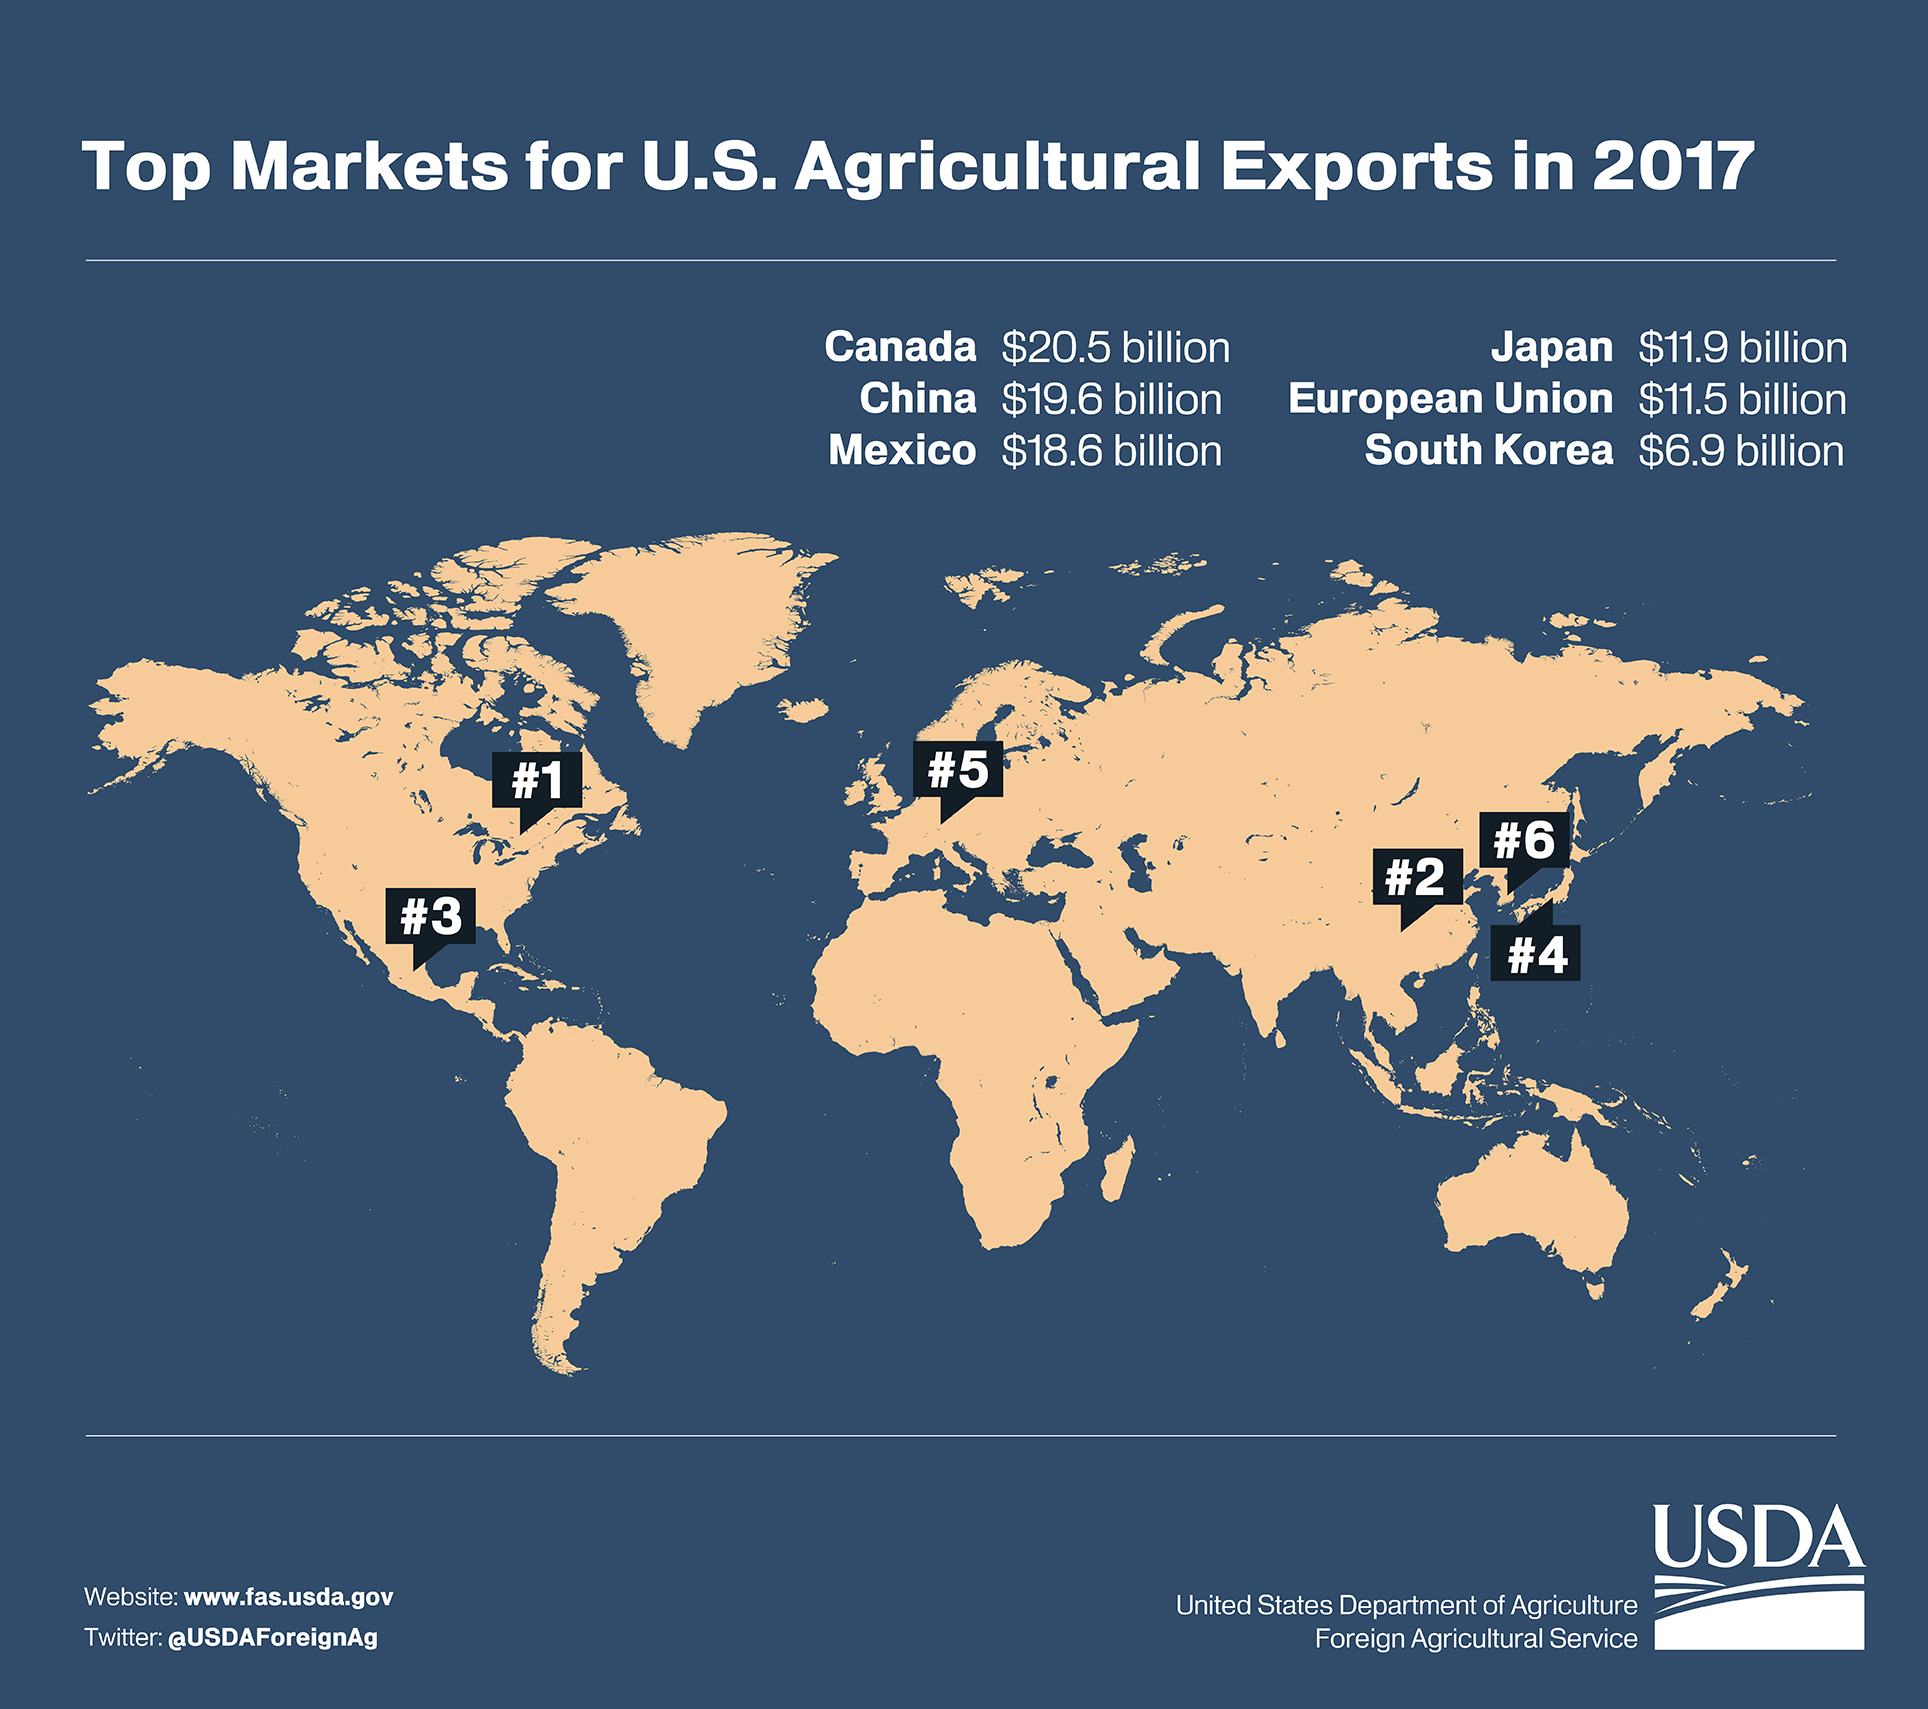 Top Markets For U.S. Agricultural Exports In 2017